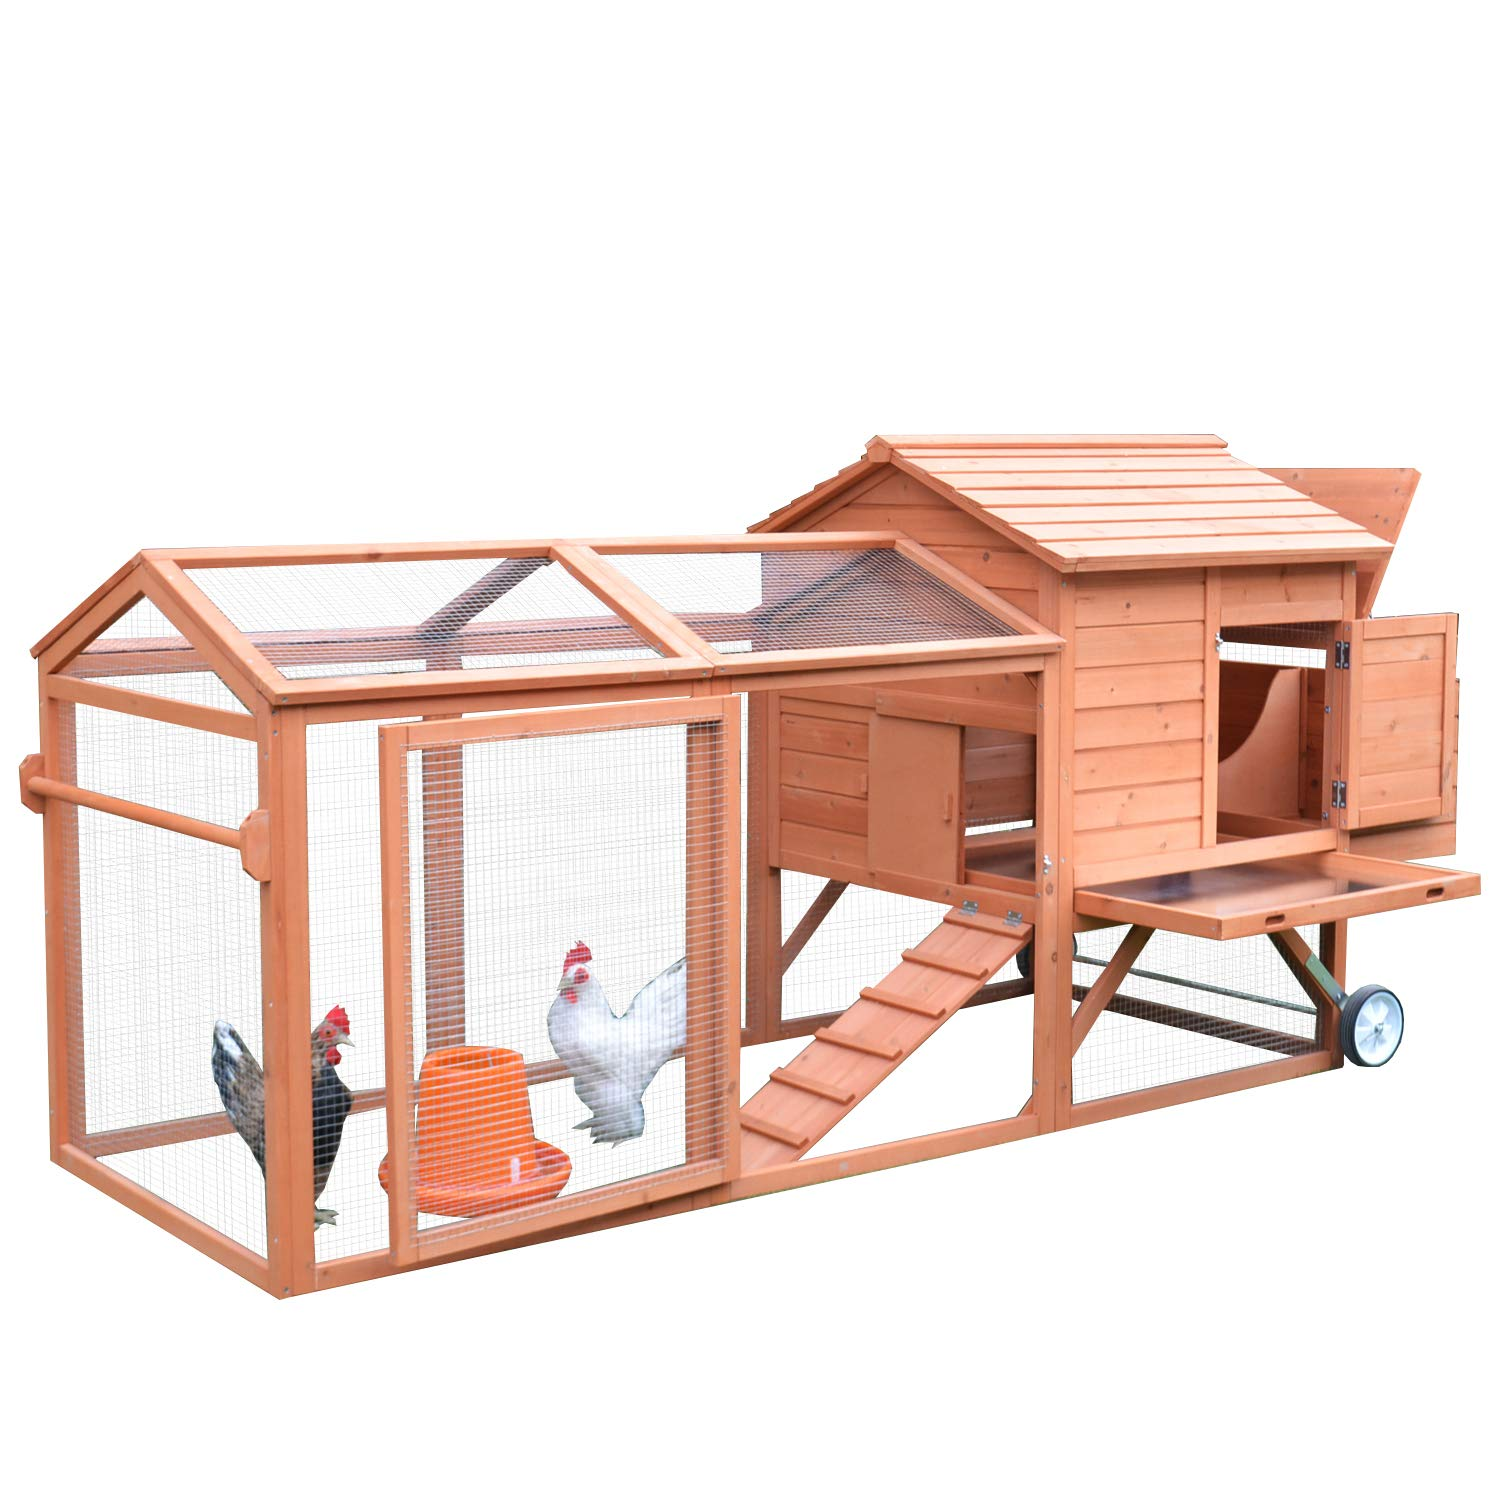 PawHut 98'' Portable Wooden Chicken Coop with Wheels Outdoor Run and Nesting Box by PawHut